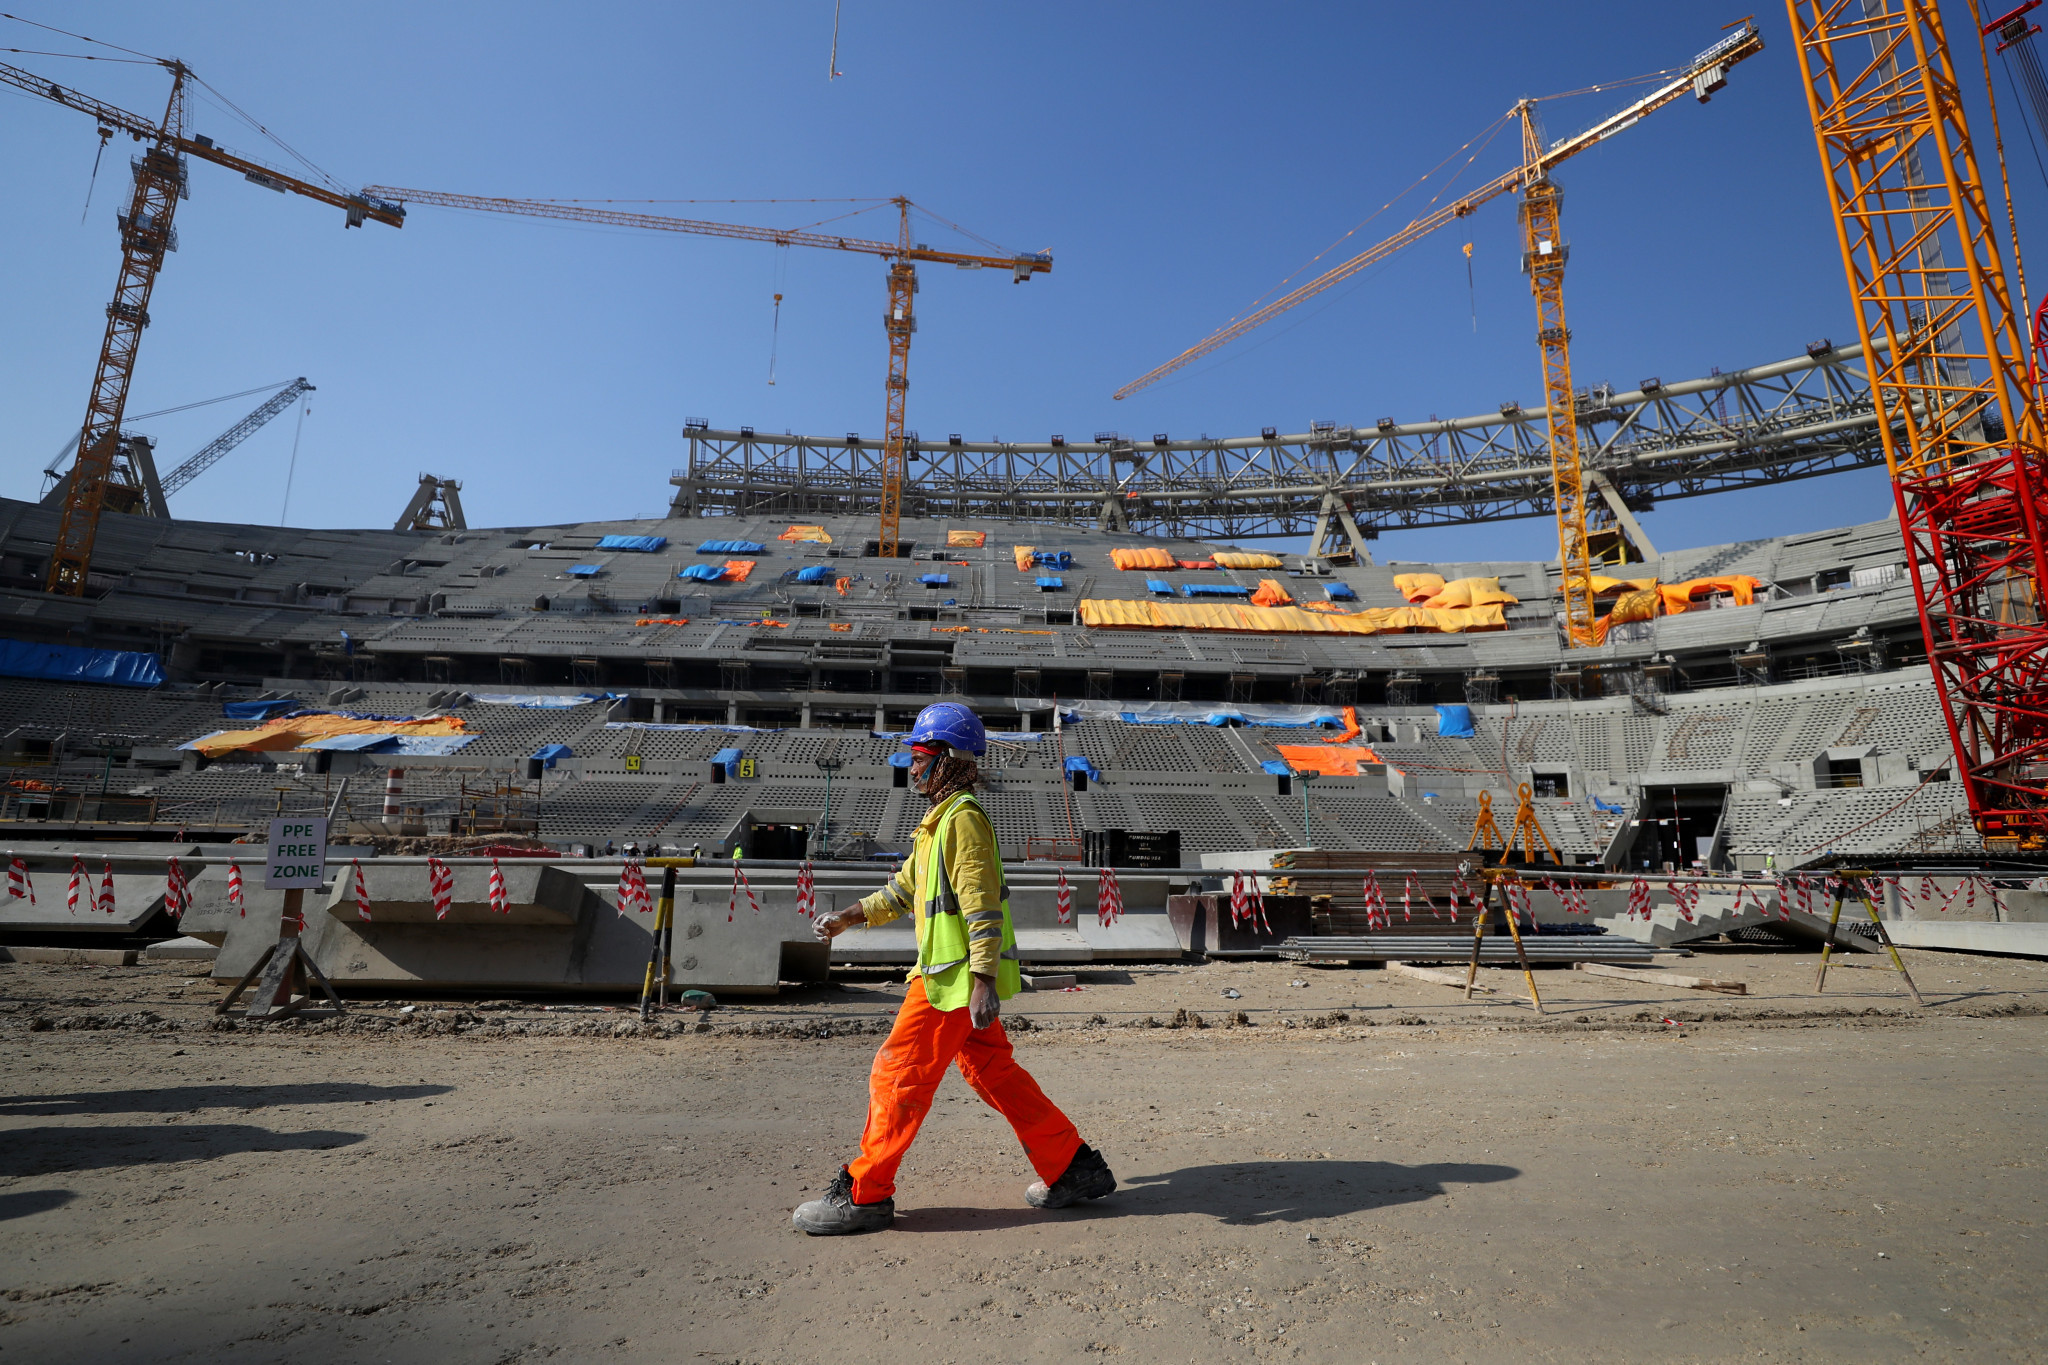 Around 6,500 workers constructing stadiums for the 2022 FIFA World Cup are thought to have died ©Getty Images